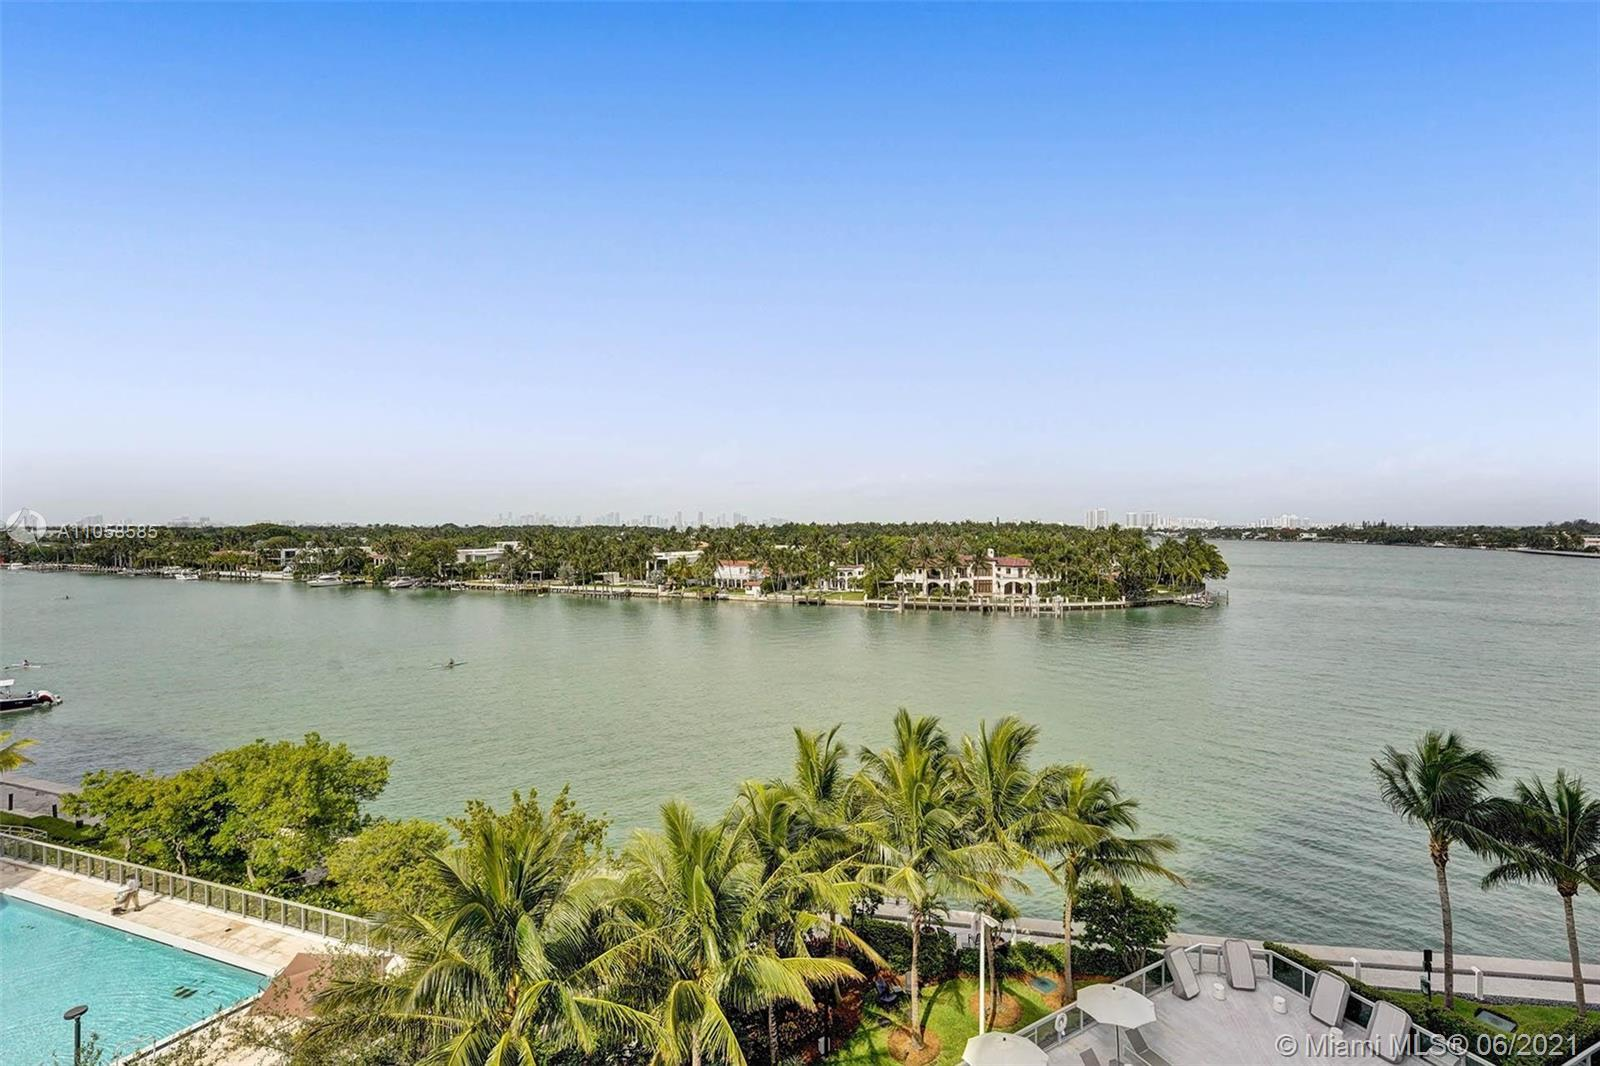 STEPS FROM THE OCEAN WITH THIS SPECTACULAR 2 BEDROOM 2 BATH UNIT AT EDEN HOUSE. THE UNIT FEATURES AN